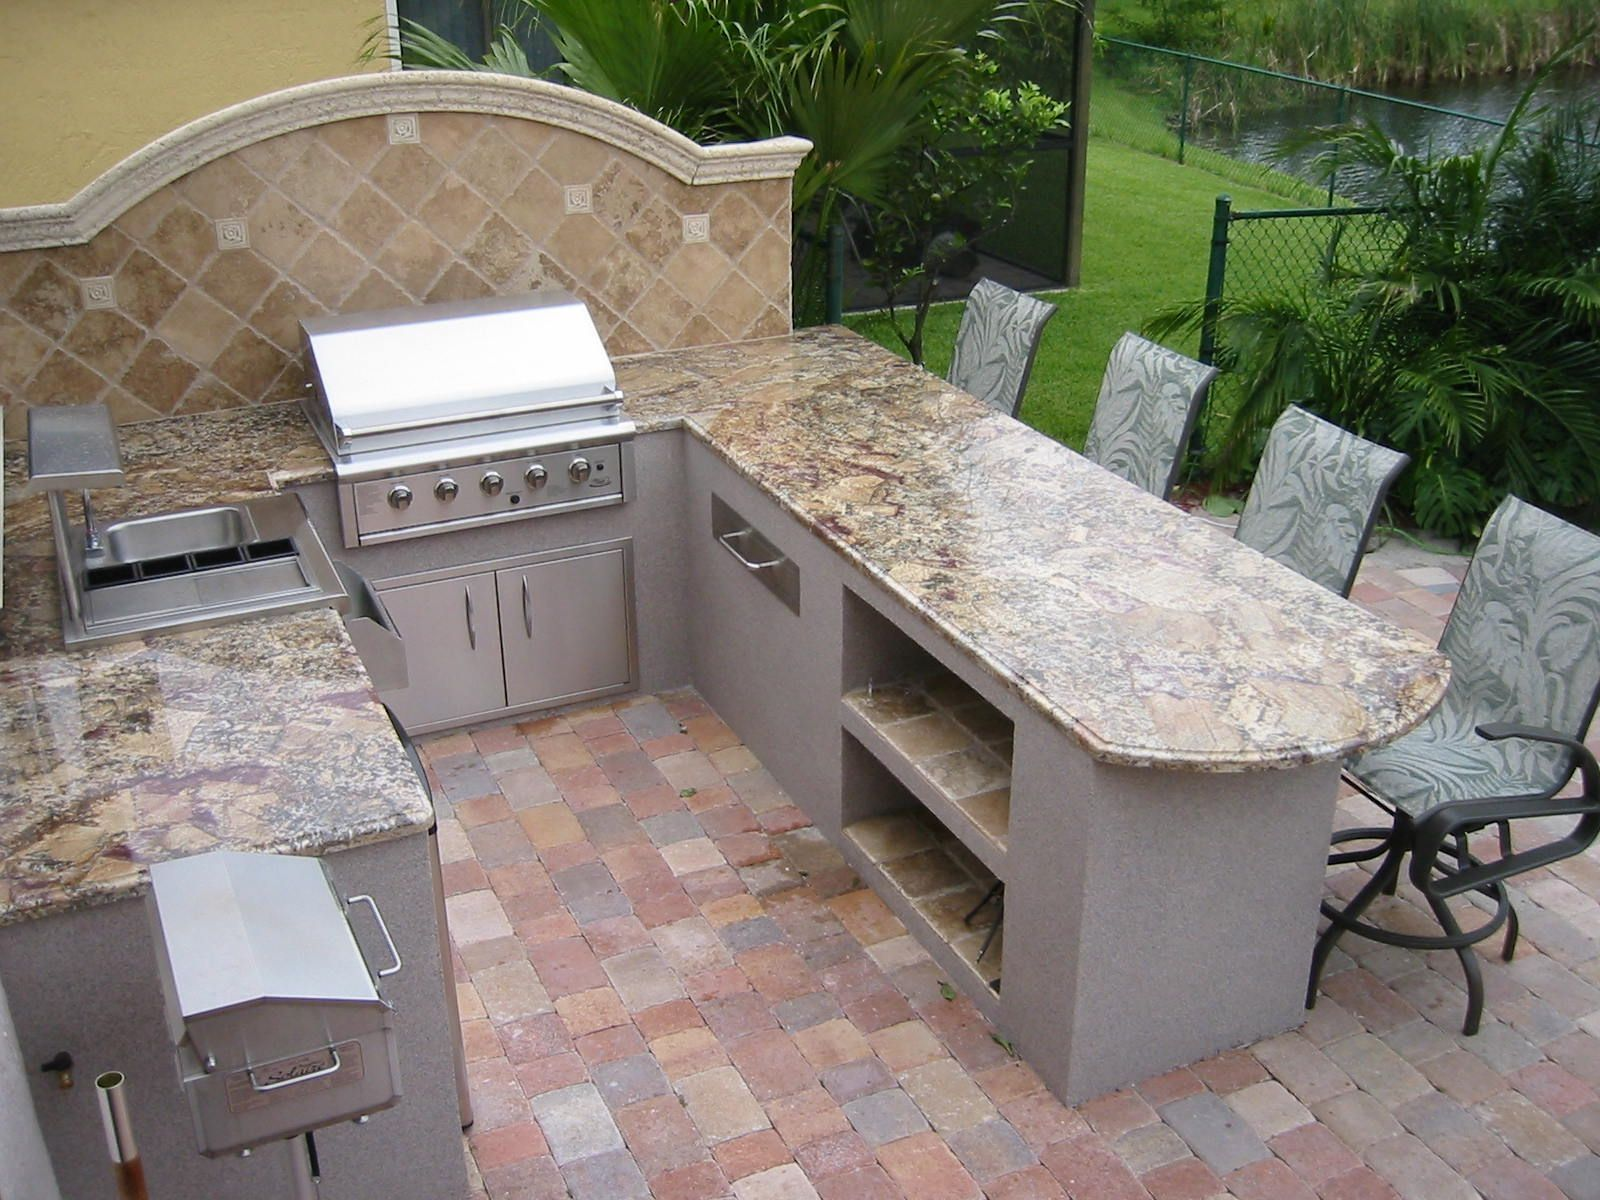 Stamped Concrete Design Ideas seamless concrete stamp job by premiere concrete design llc Decorative Stamped Concrete Patio Design Kitchen Grill Area St Ed Concrete Patio